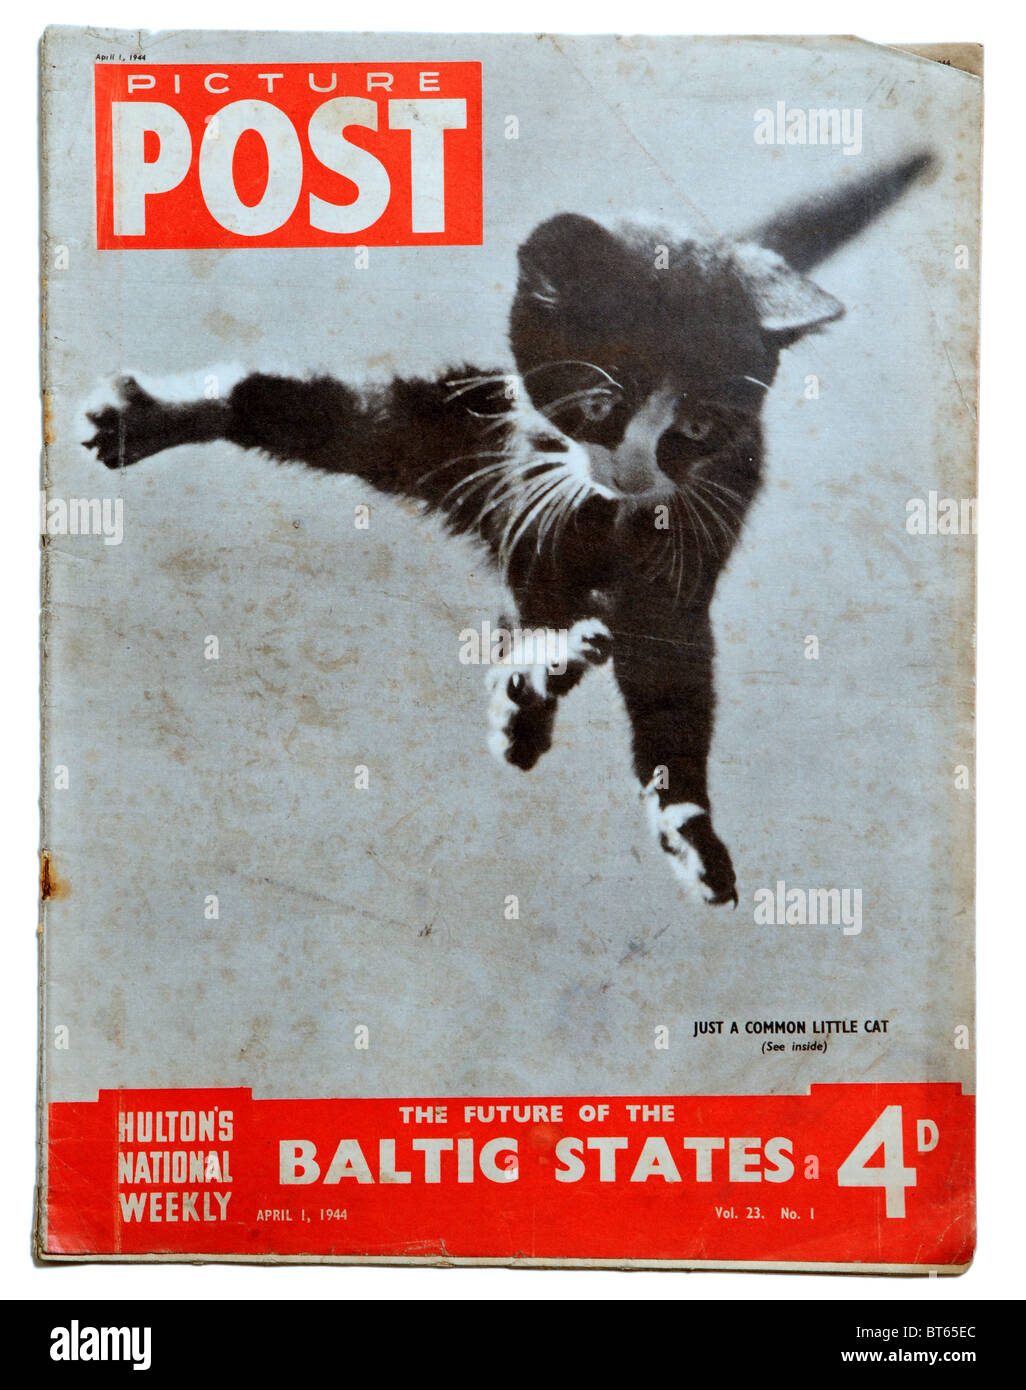 1 april 1944 cat kitten flying falling Picture Post prominent photojournalistic magazine published United Kingdom - Stock Image